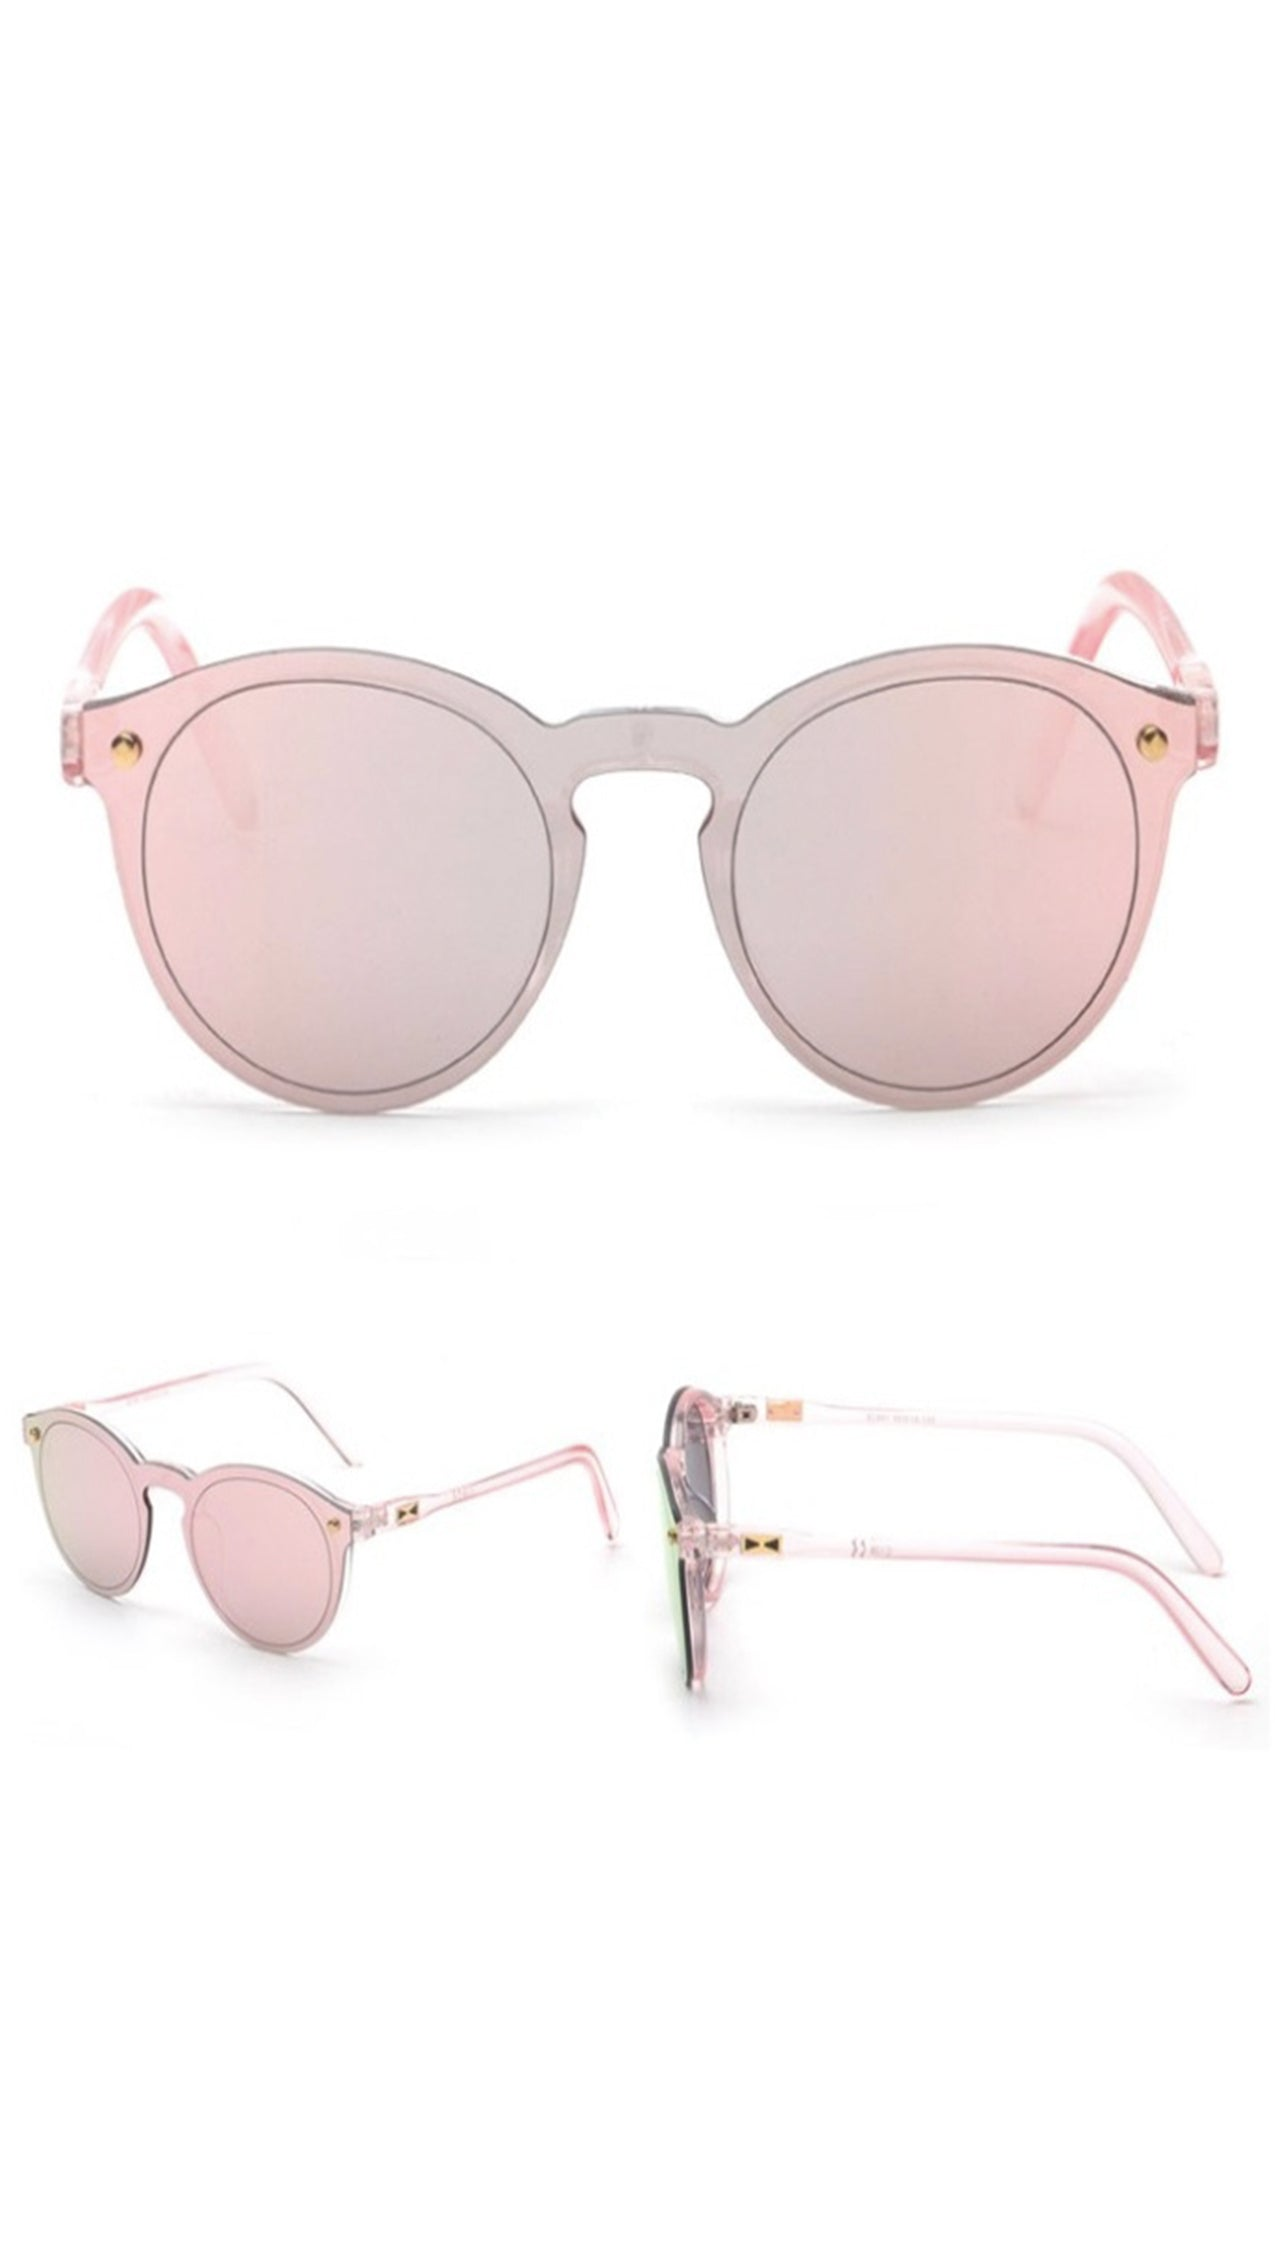 Charlie Shop Shade Sunglasses Rose Gold Reflective Mirror Lens Pink